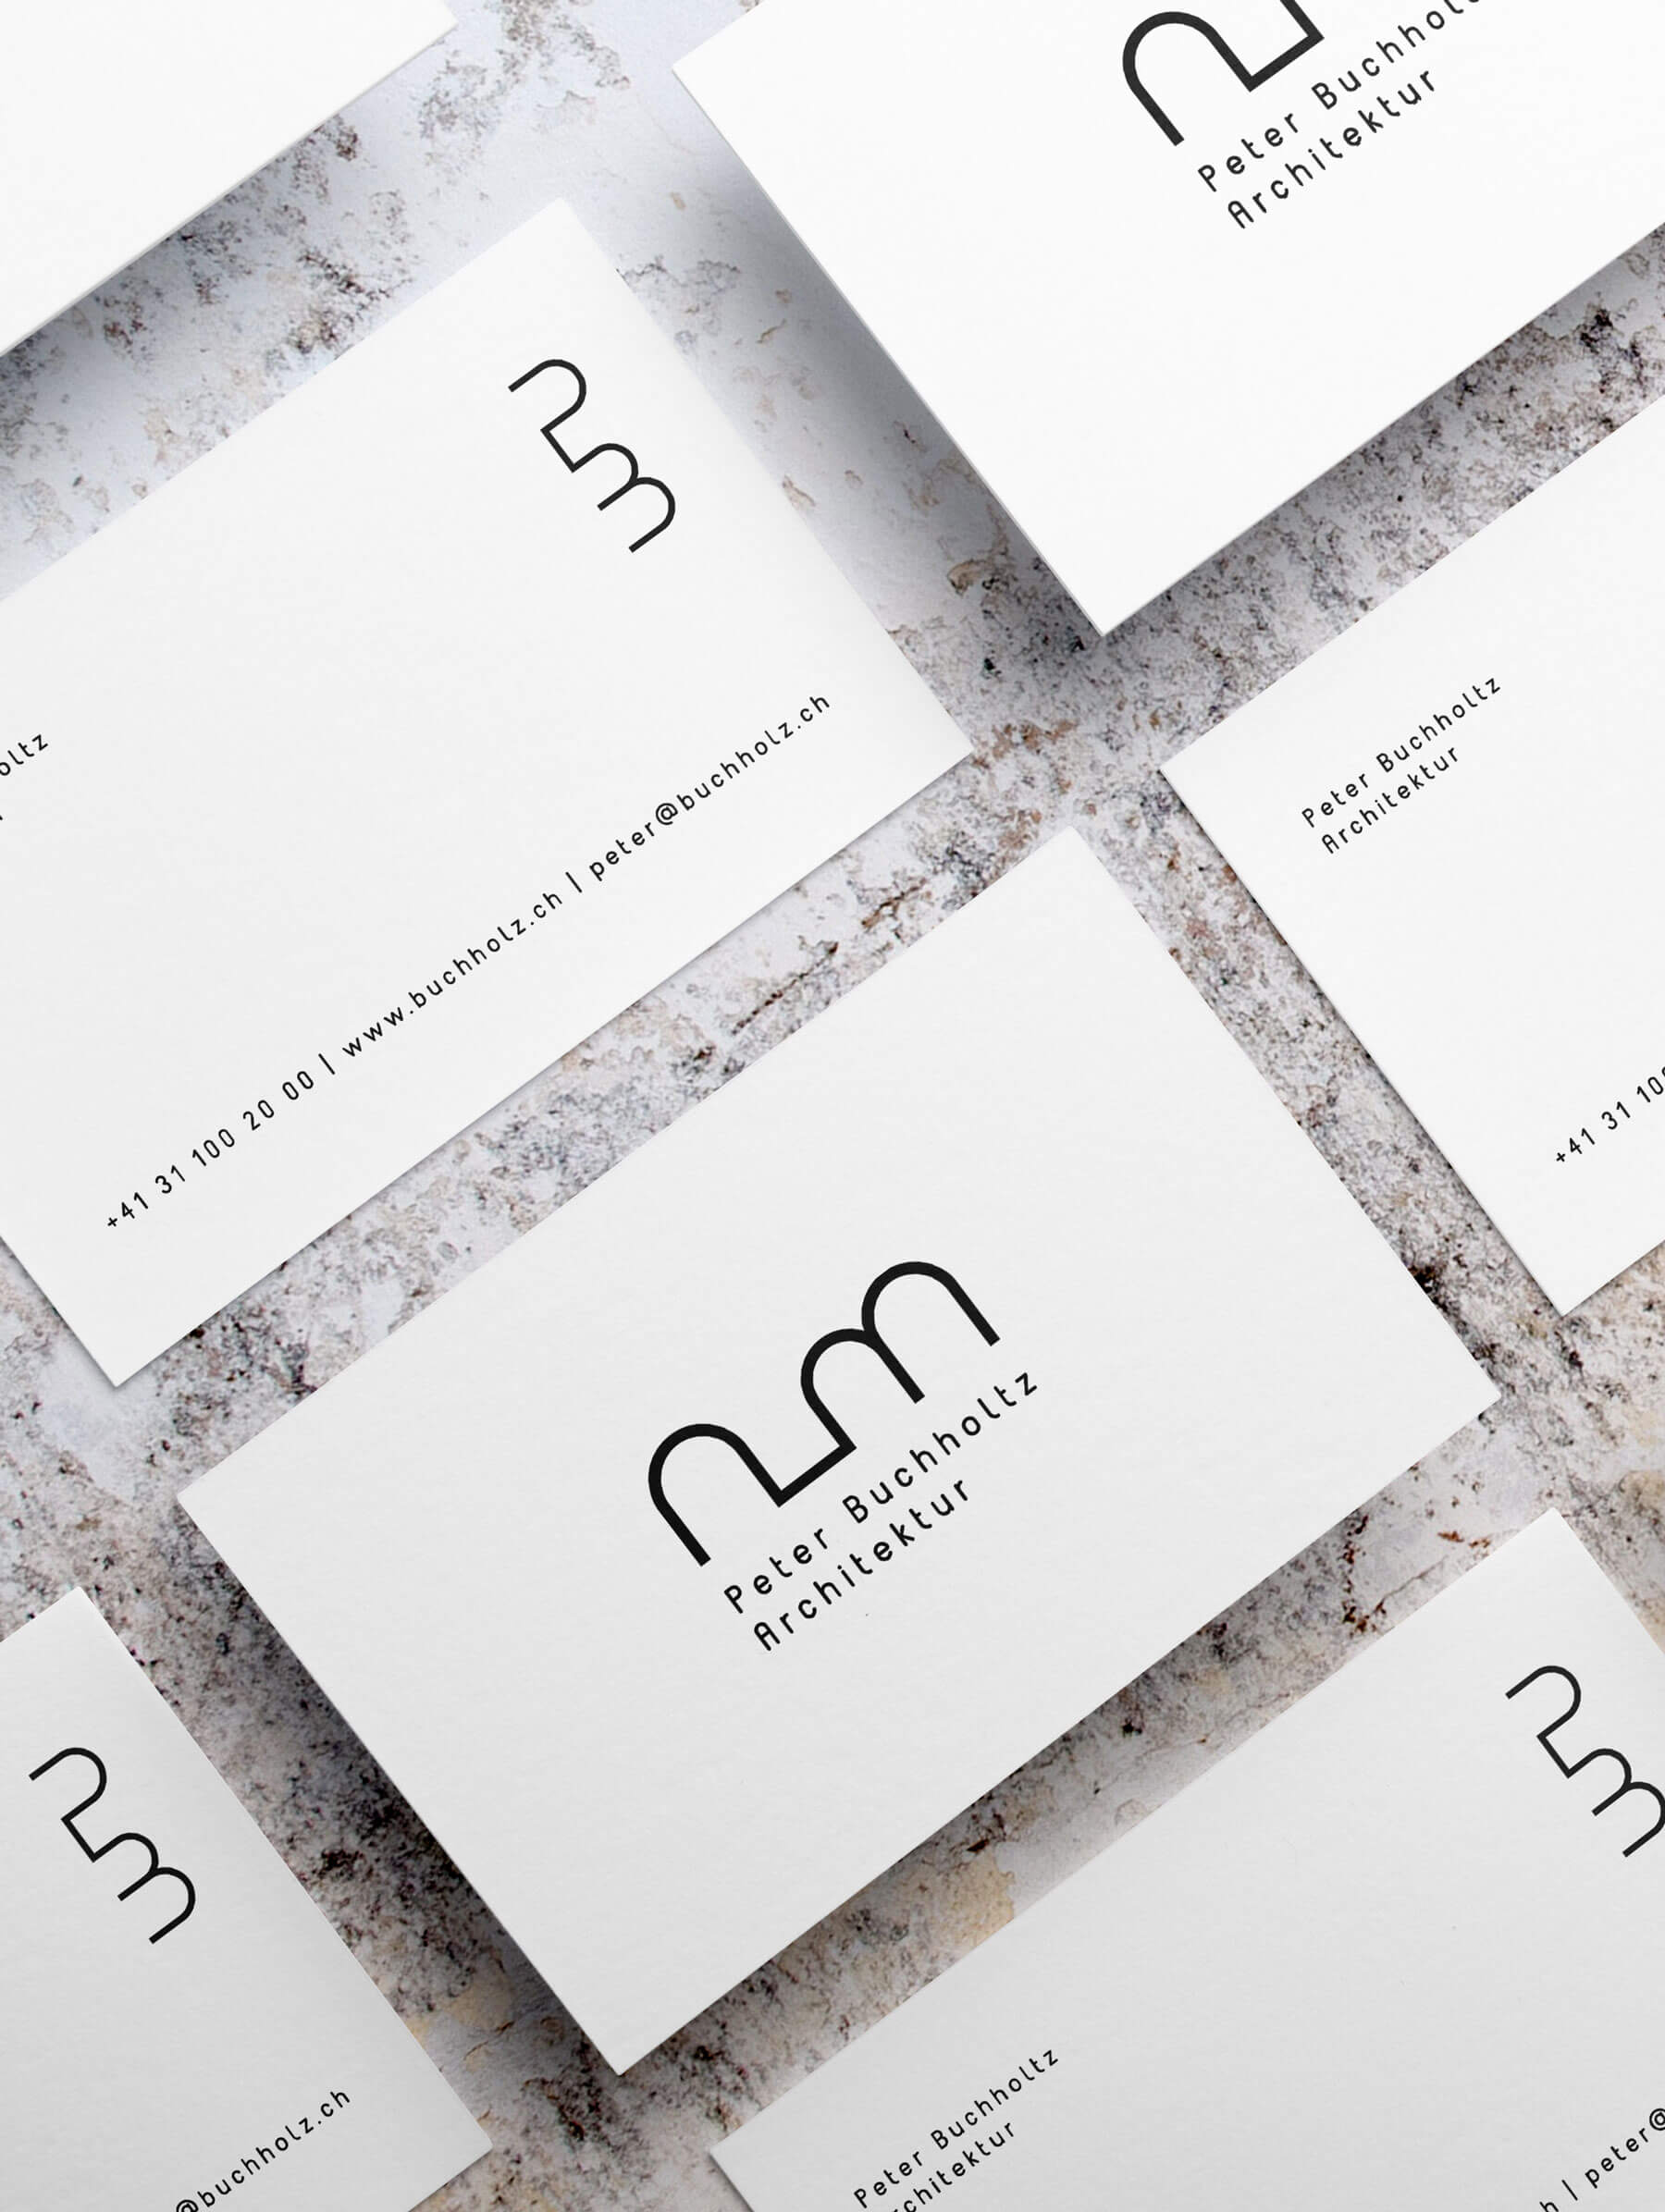 Business card design for Swiss architect in Bern